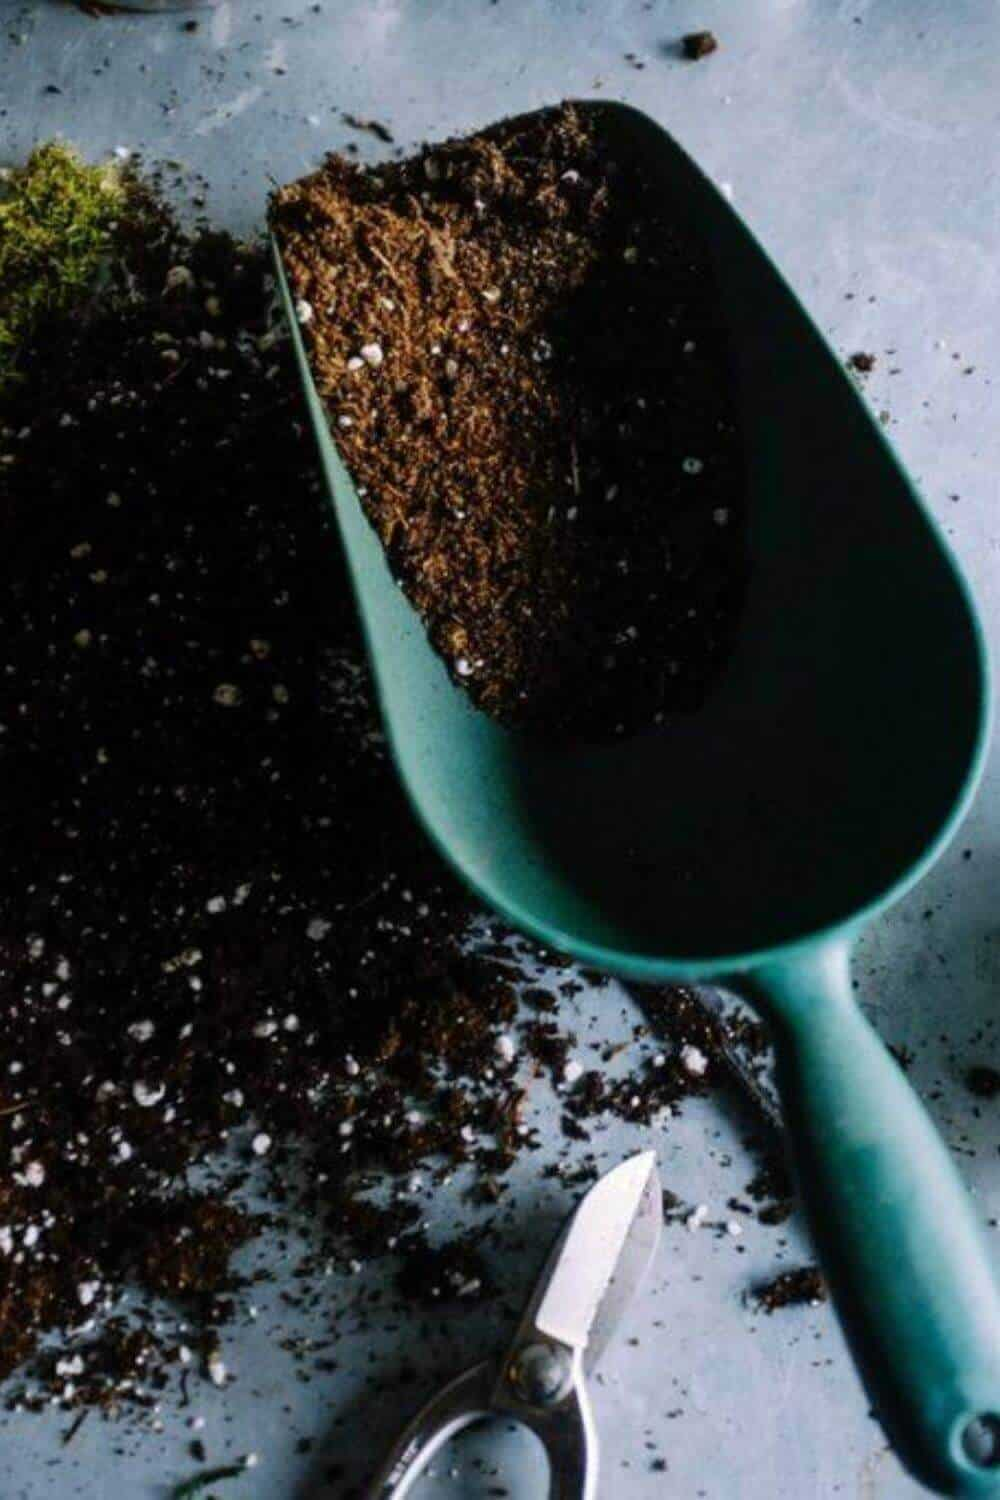 Compost Magic The Many Benefits Of Composting #benefitsofcomposting #sustainableliving #sustainablejungle